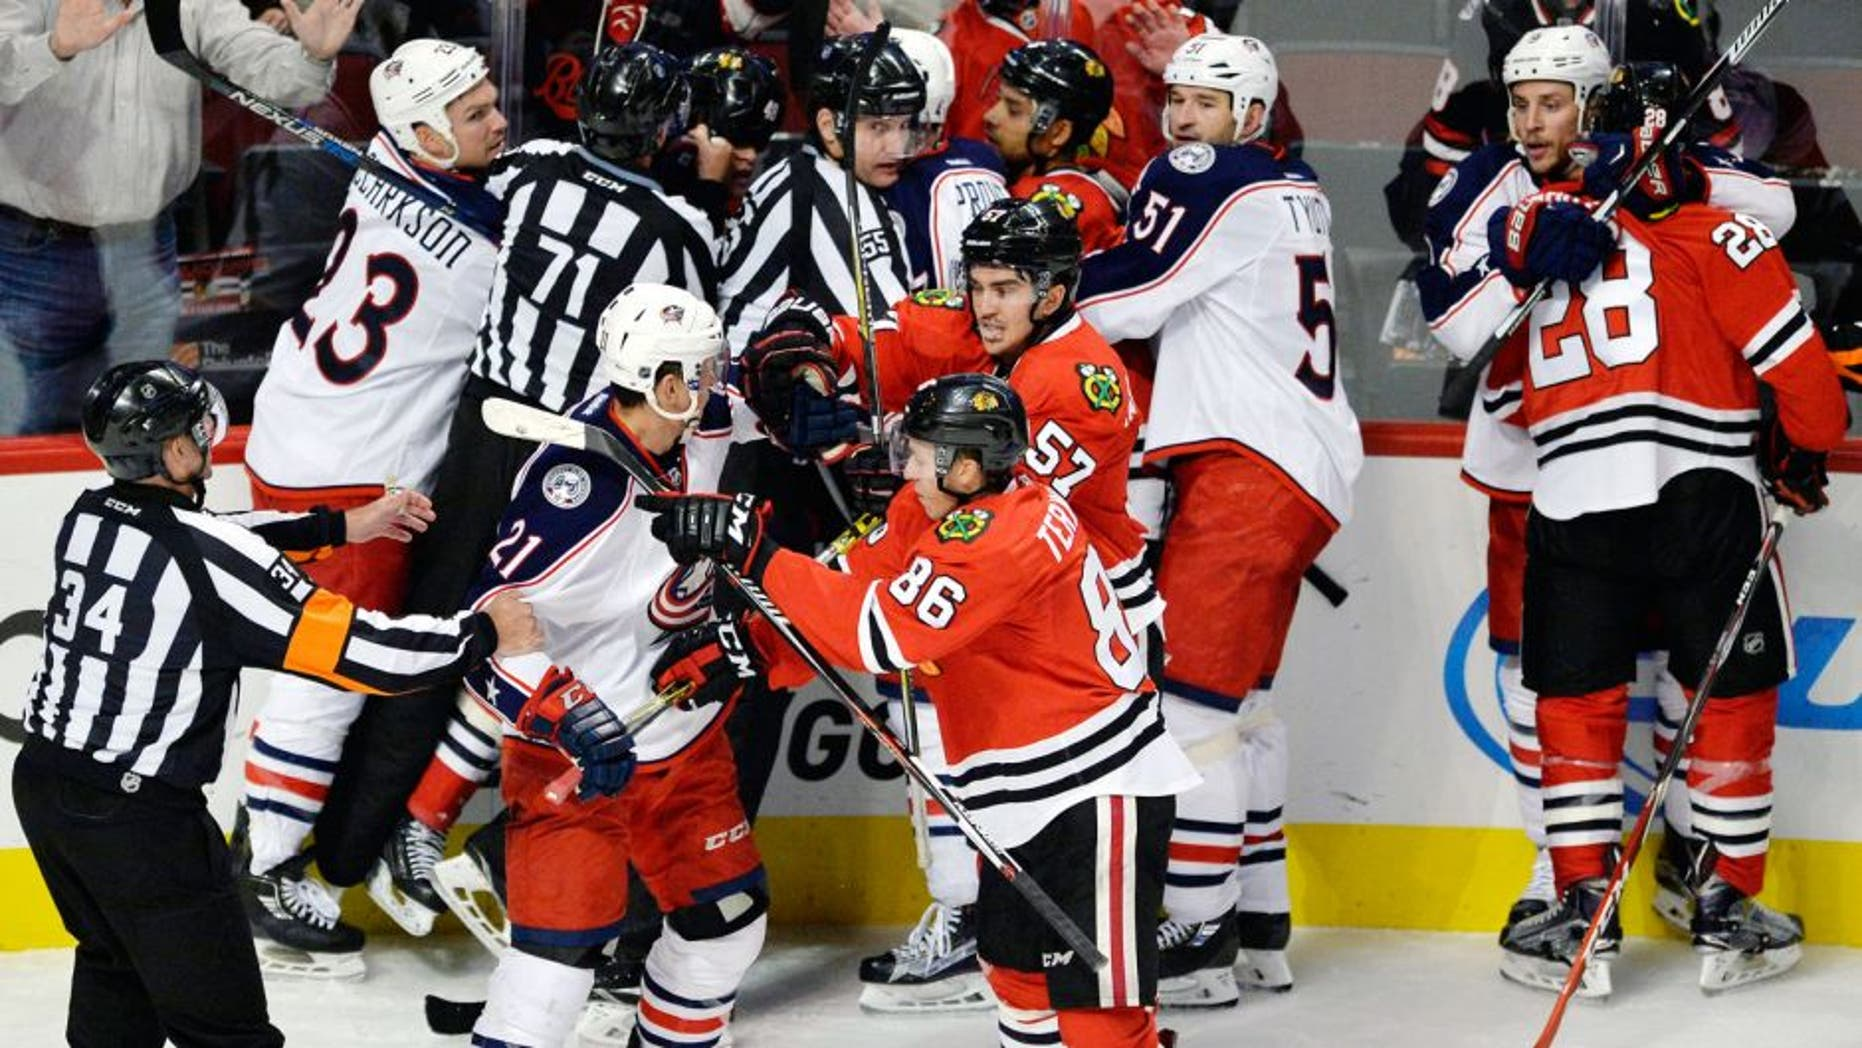 Chicago Blackhawks players scuffle with Columbus Blue Jackets players during the third period of an NHL hockey game Saturday, Oct. 17, 2015, in Chicago. Chicago won 4-1. (AP Photo/Paul Beaty)